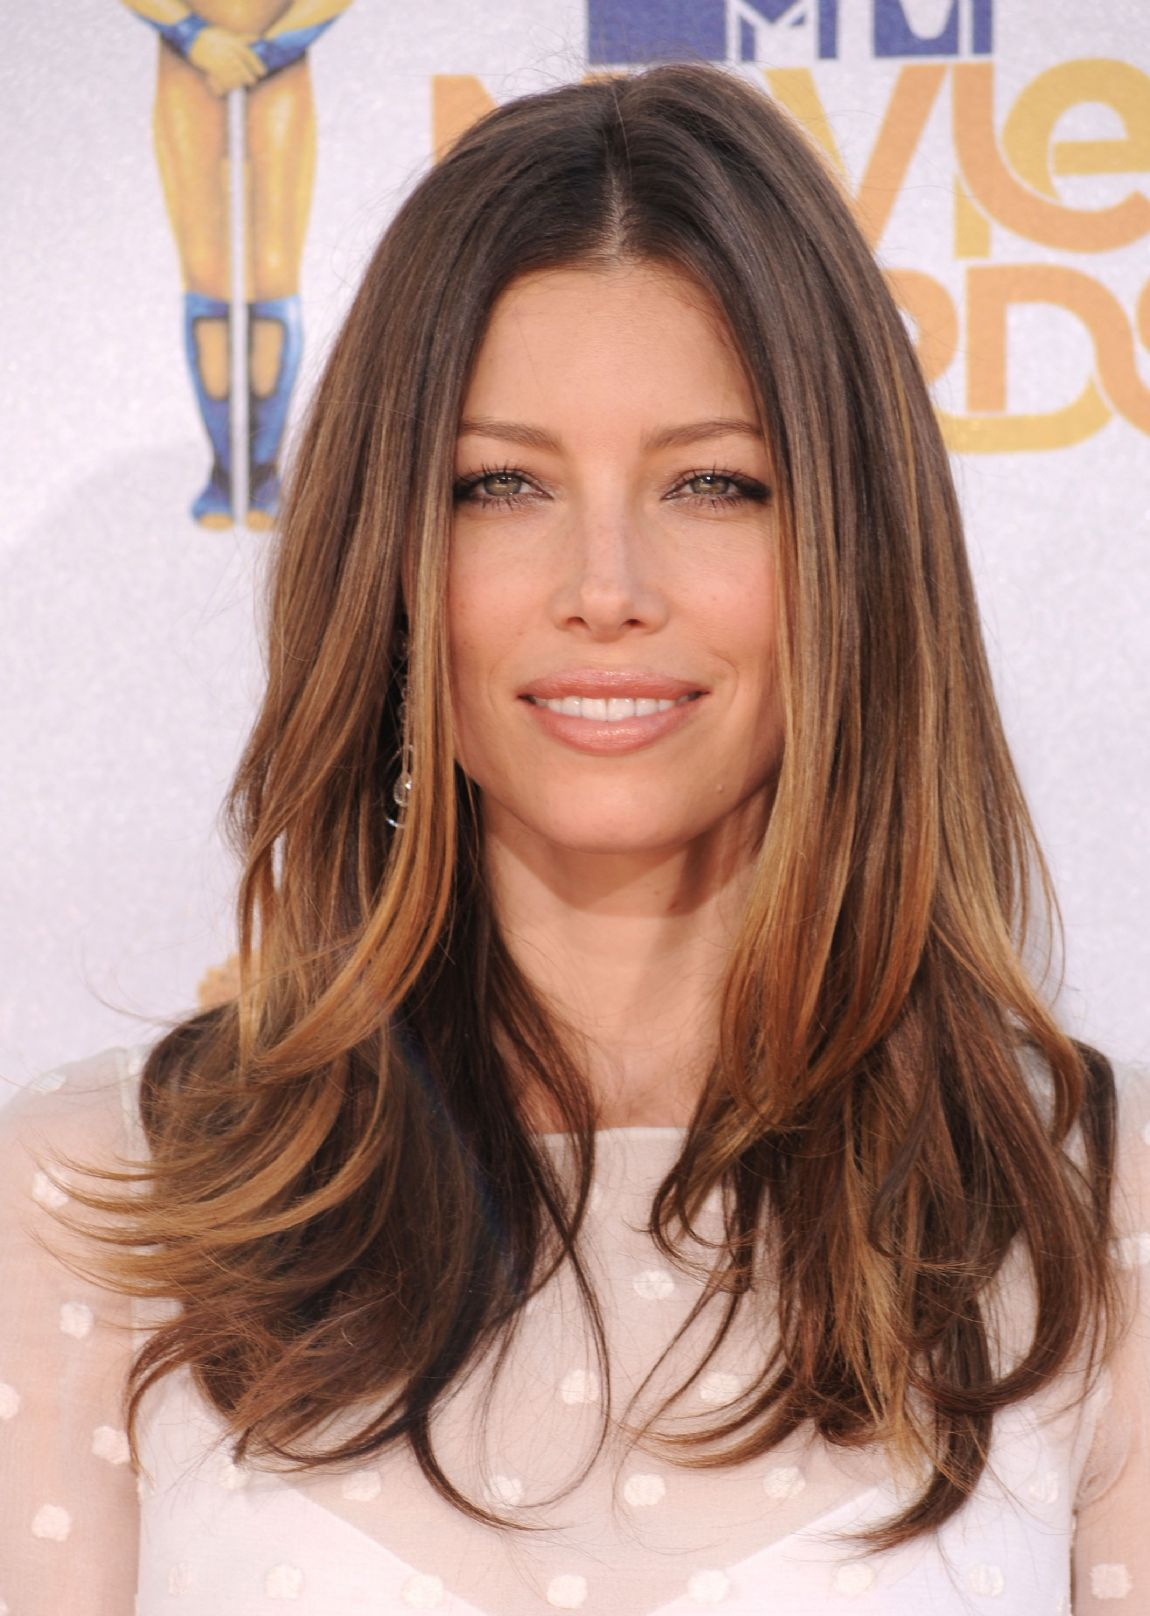 123 Best Hair HighLights images | Gorgeous hair, Haircolor ...